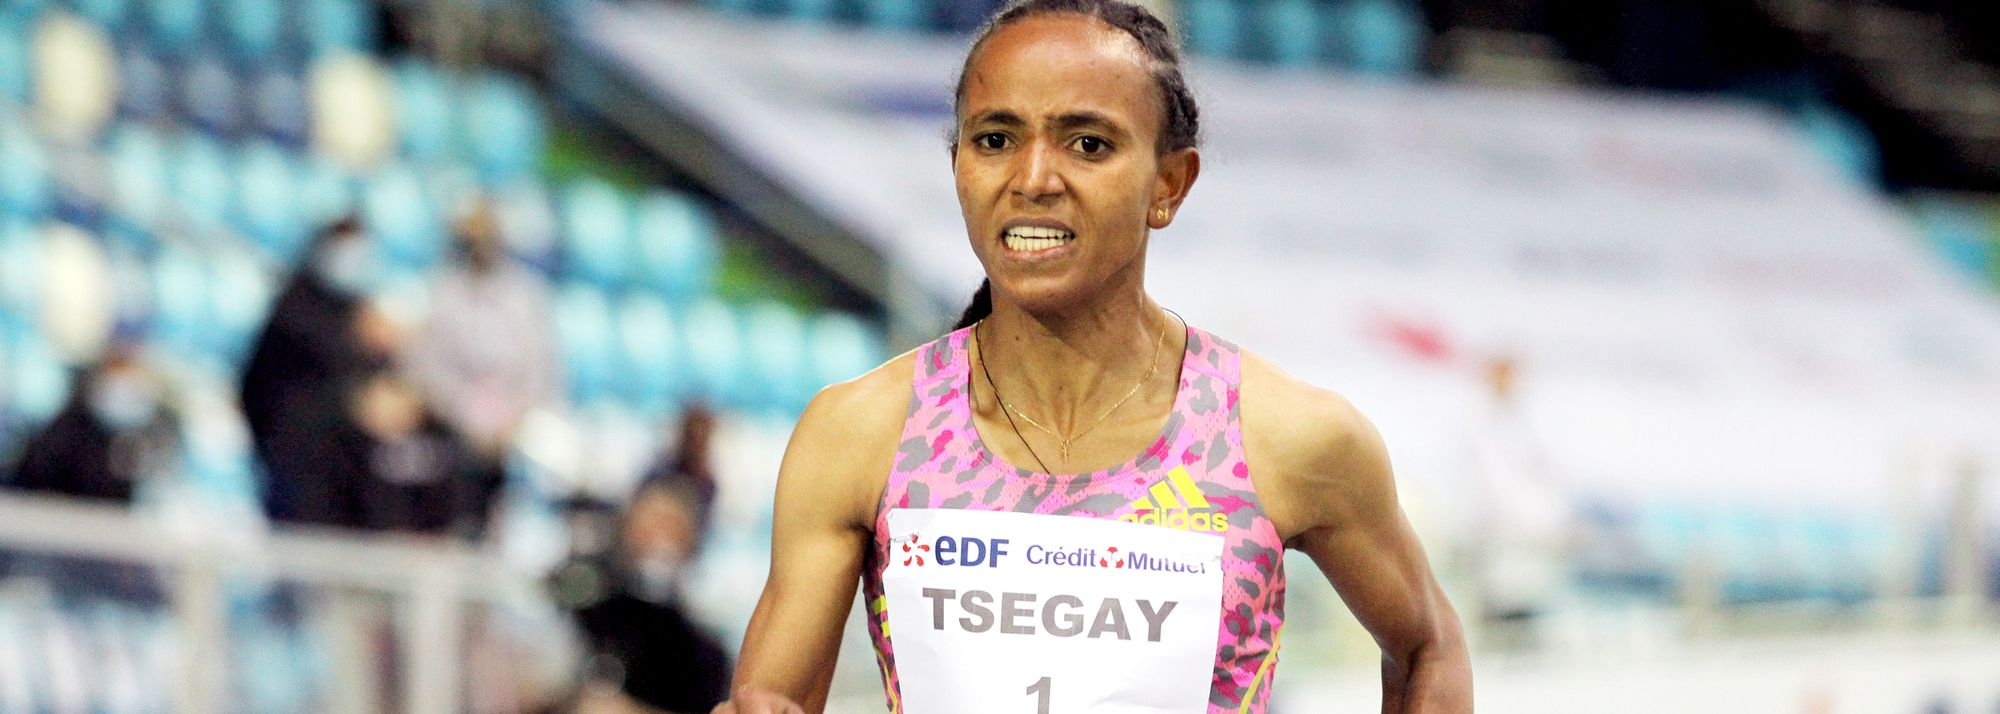 World indoor record-holder Gudaf Tsegay and European indoor champion Patryk Dobek claimed middle-distance victories at the Orlen Janusz Kusocinski Memorial – a World Athletics Continental Tour Silver meeting – in Chorzow on Sunday (20).